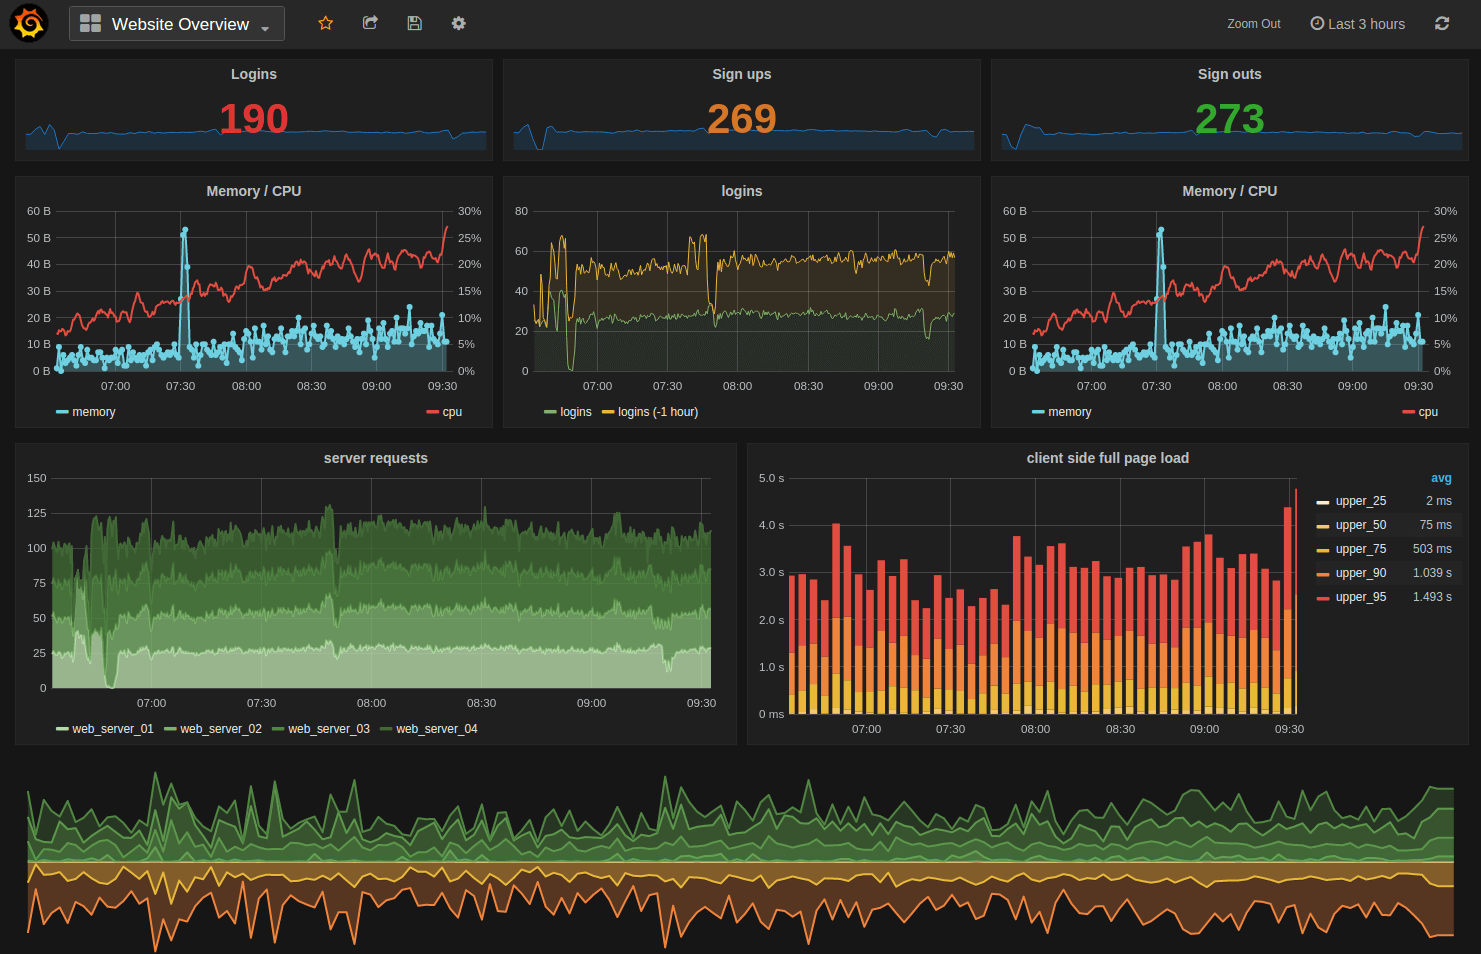 InfluxDB To Grafana : Visualizing Time Series Data in Real Time